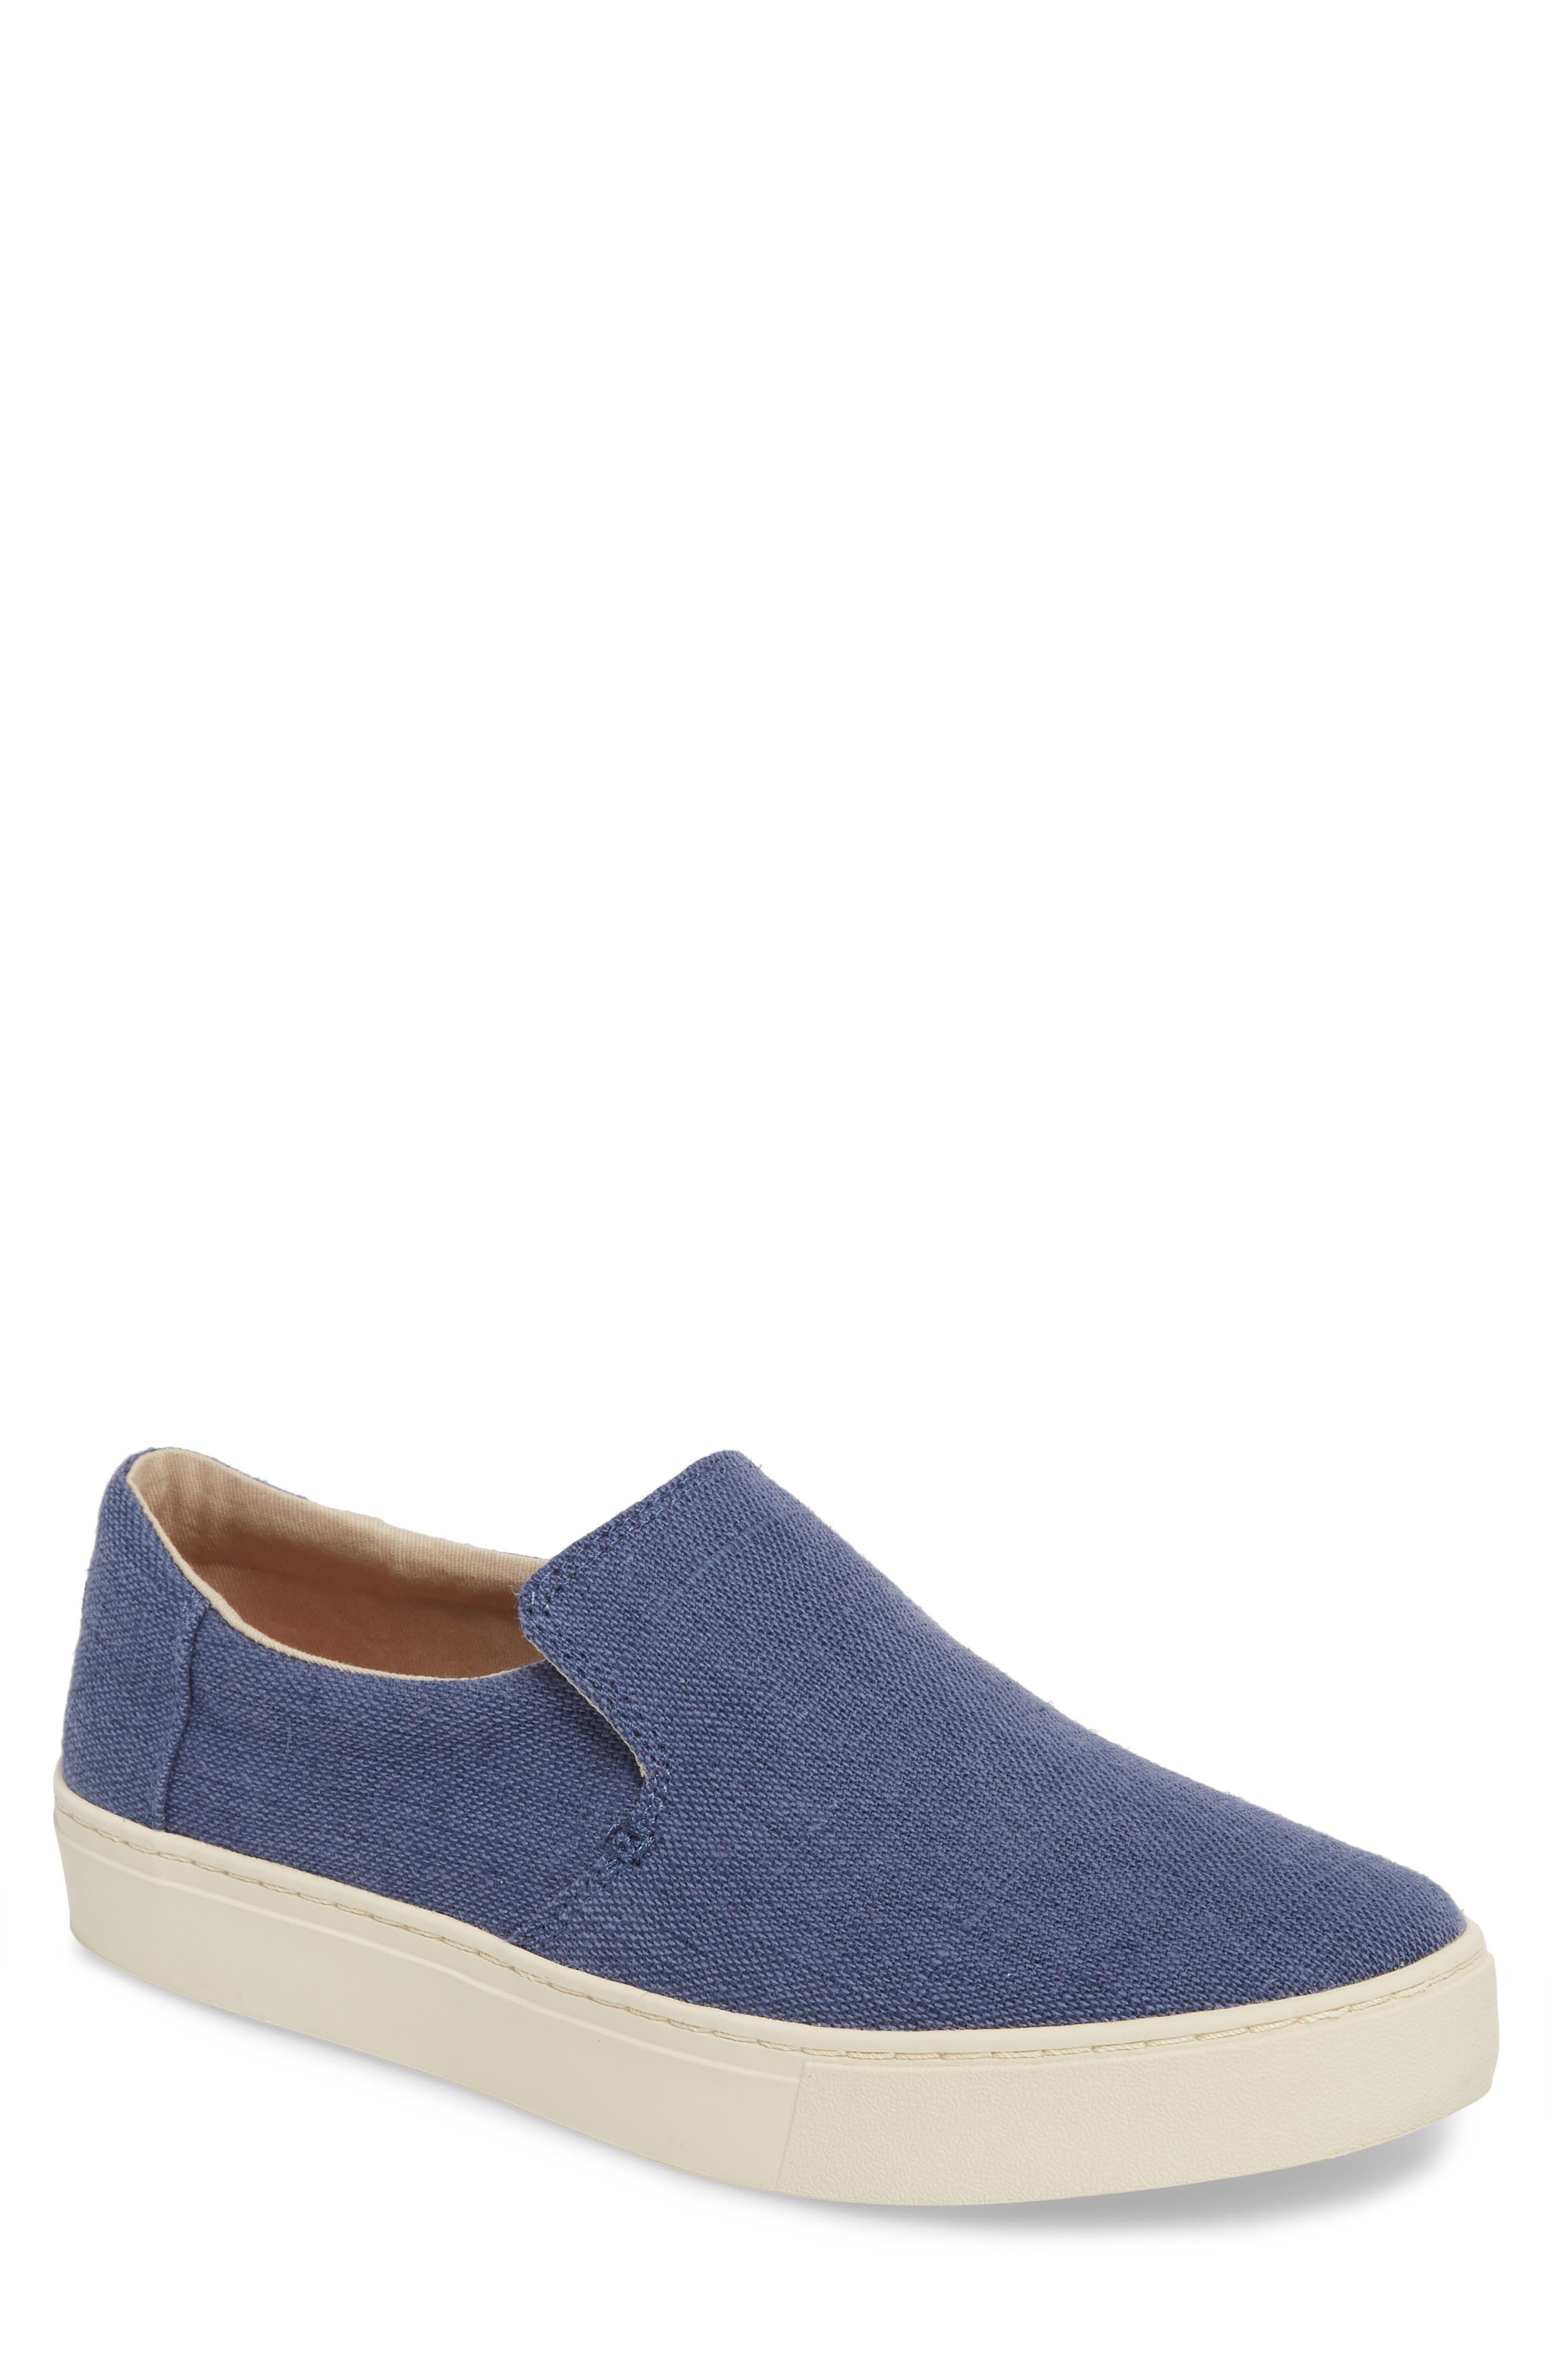 TOMS,                             Loma Slip-On Sneaker,                             Main thumbnail 1, color,                             CADET BLUE HERITAGE CANVAS